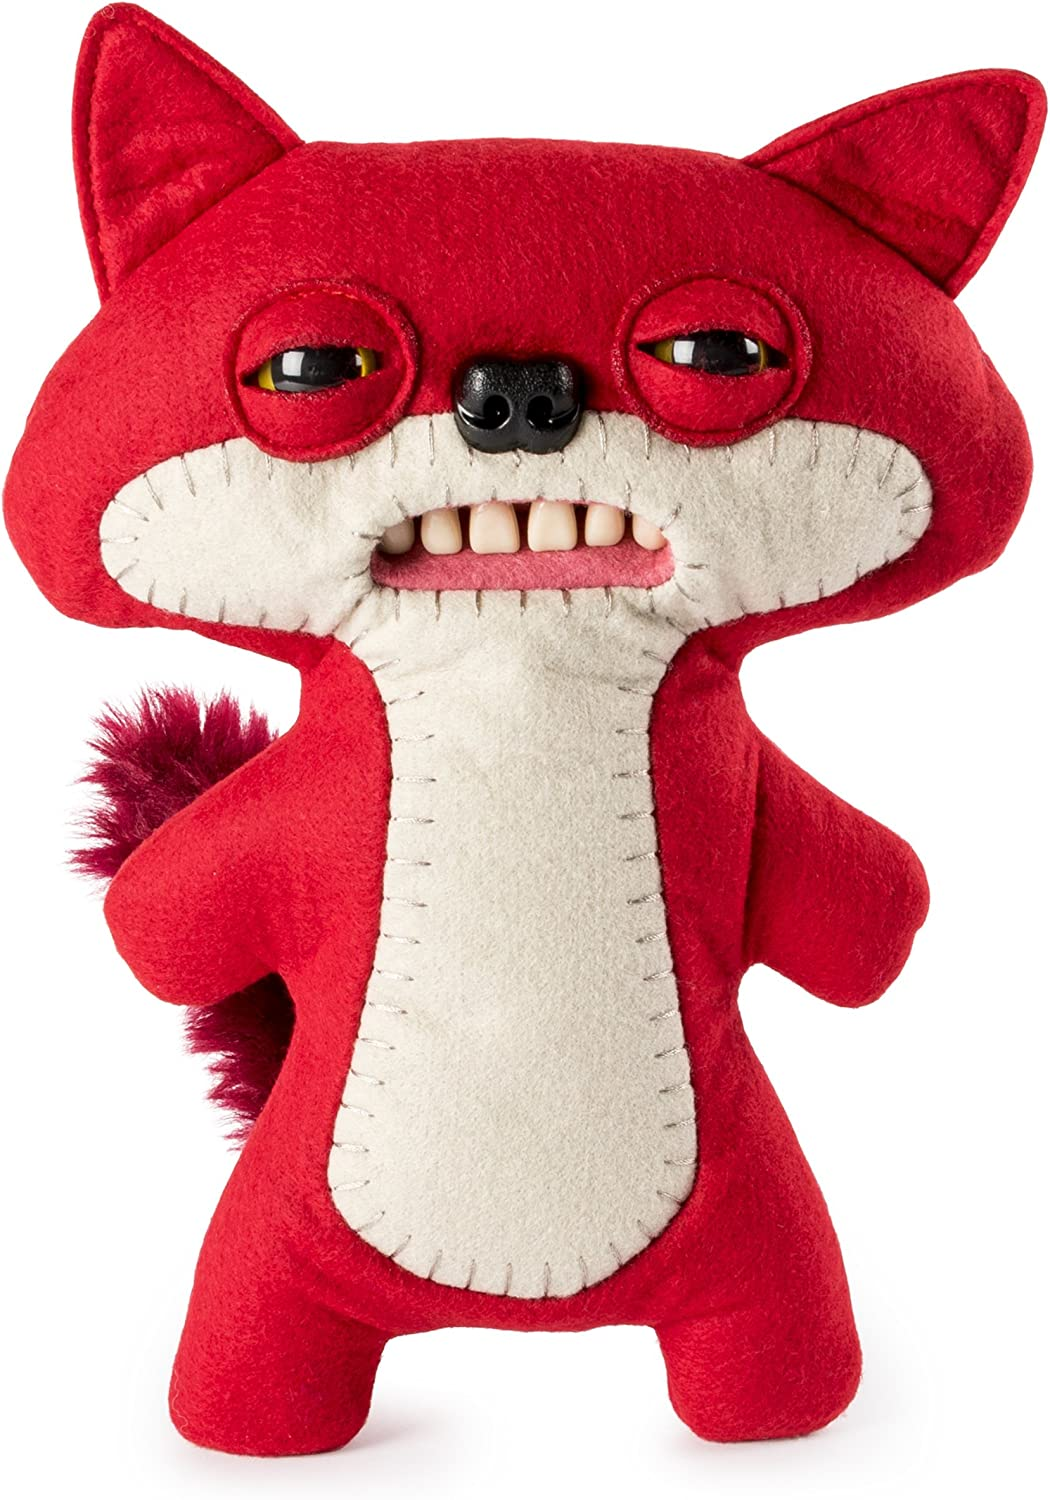 "Amazon.com: Fugglers – Funny Ugly Monster, 9"" Suspicious Fox (Red) Plush  Creature with Teeth, for Ages 4 & Up: Toys & Games"